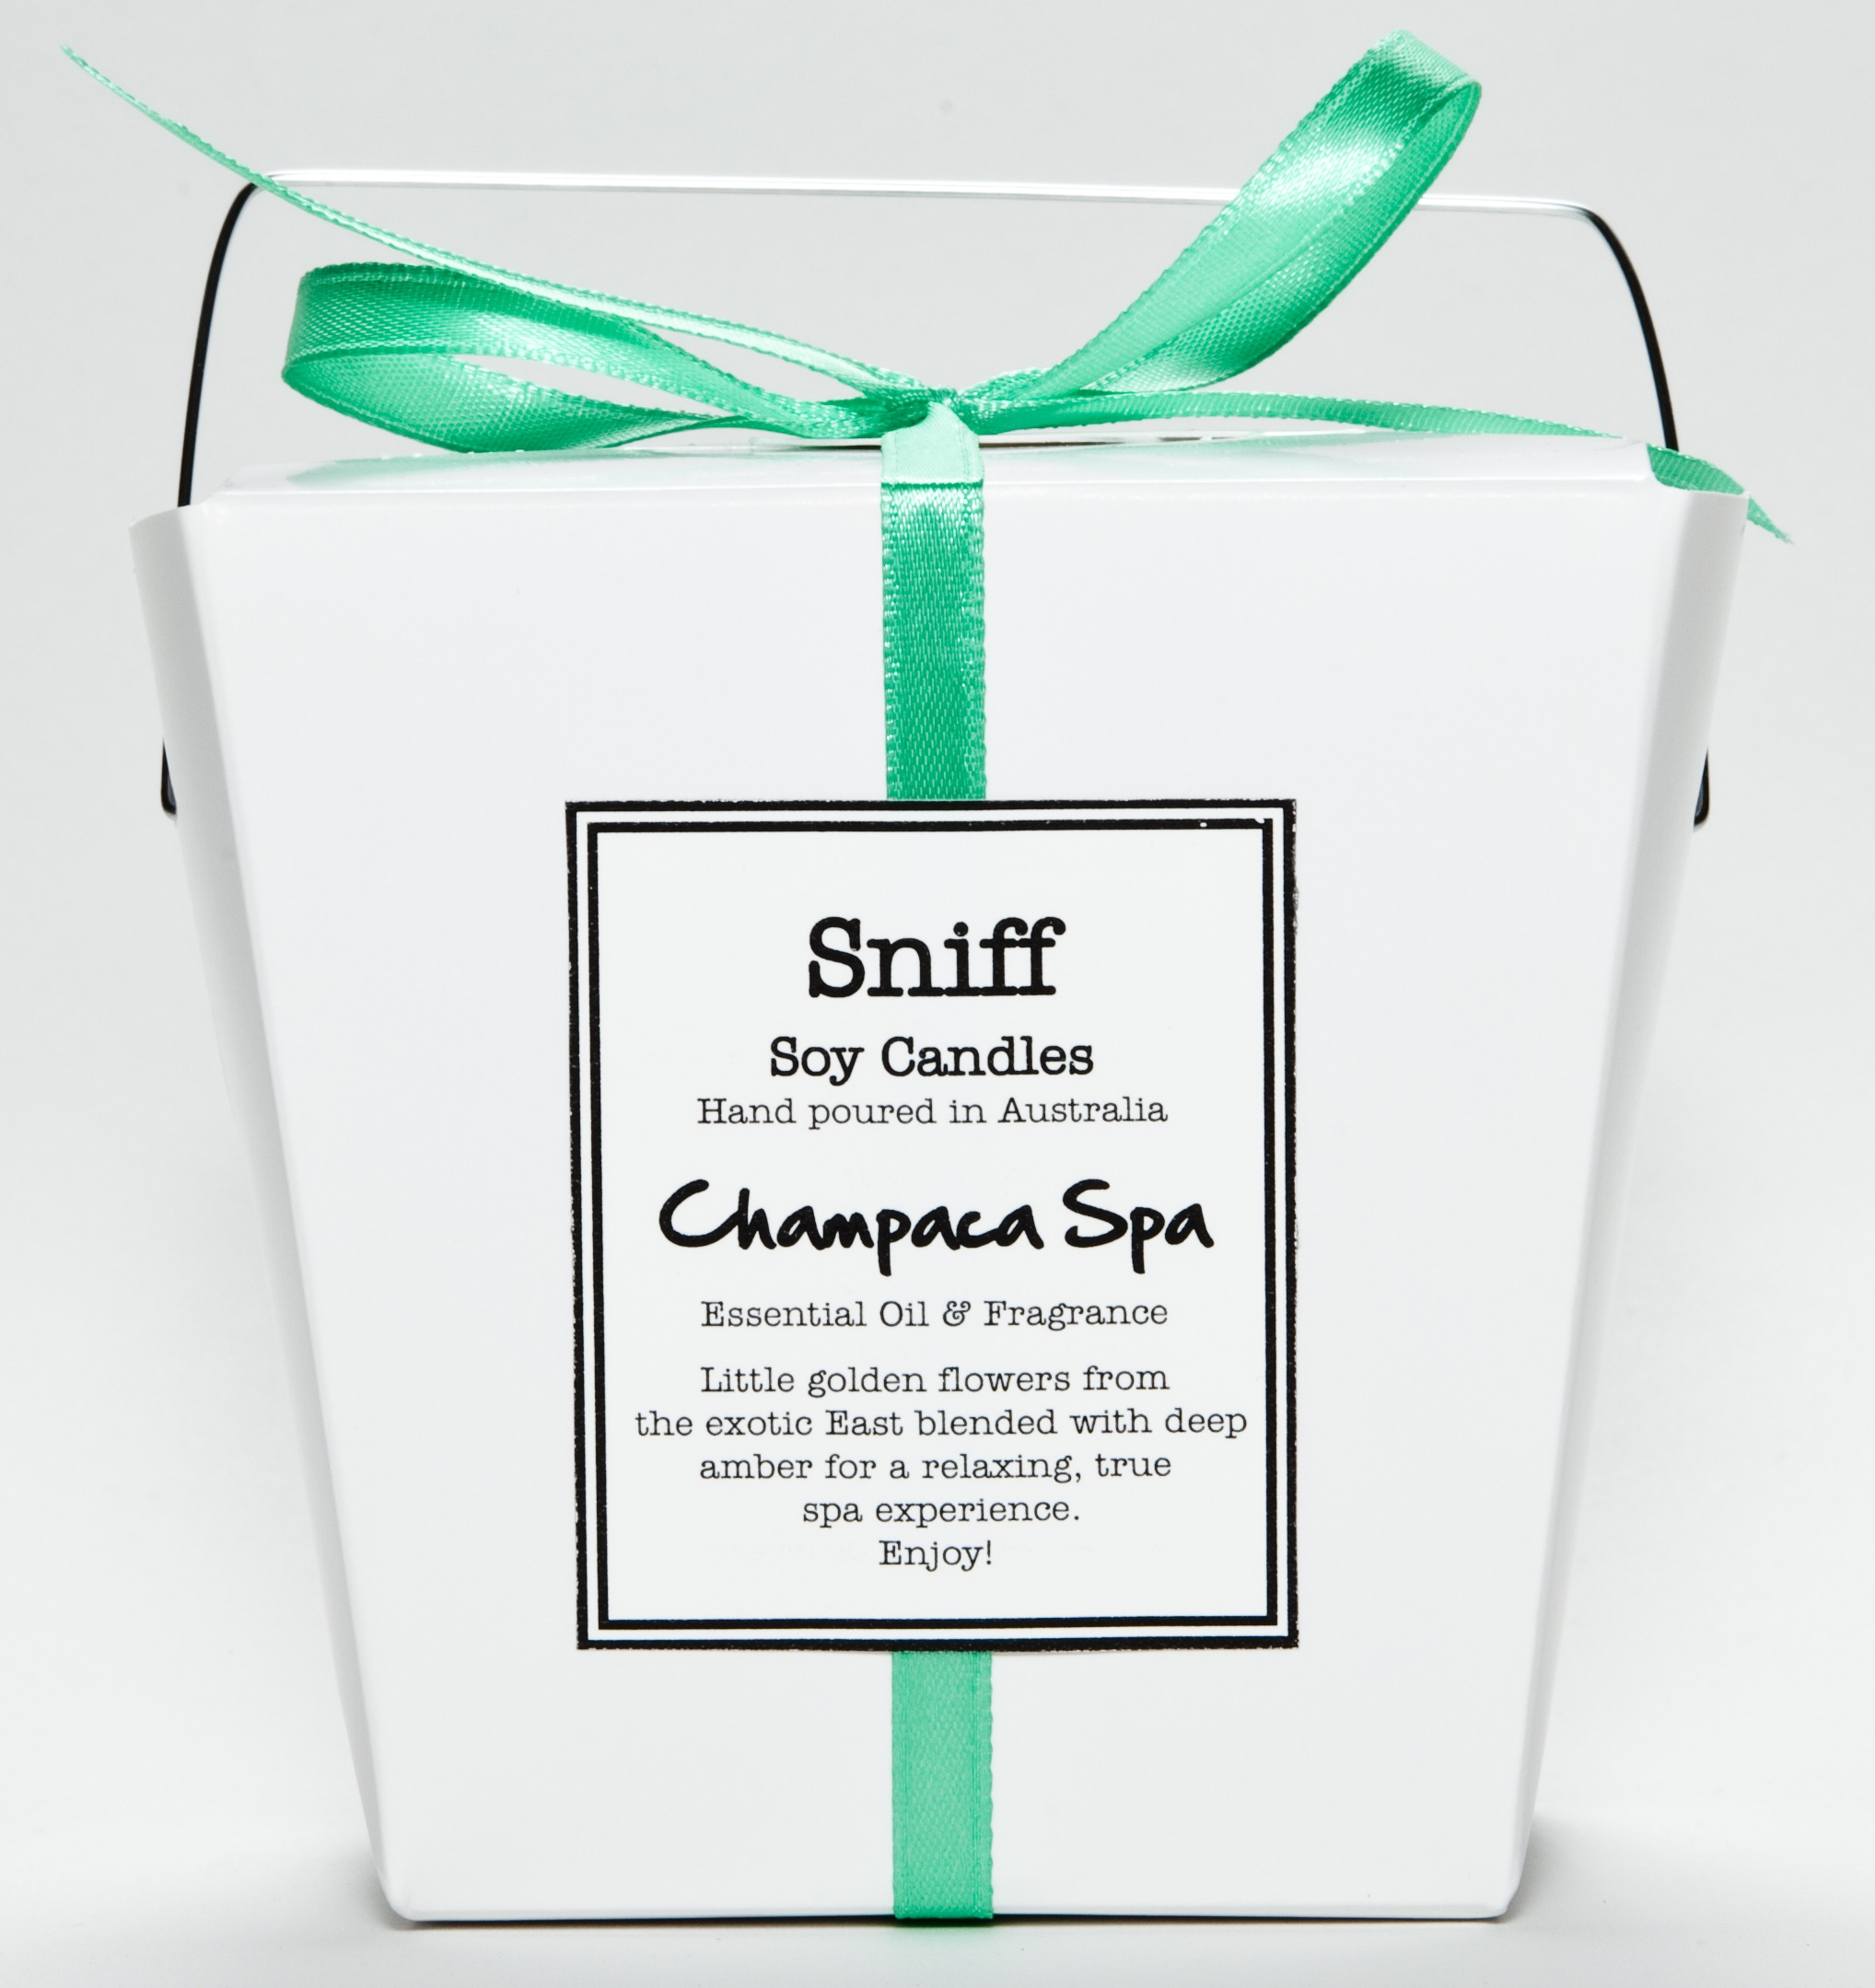 Wholesale Sniff Soy Candles candles. Champaca Spa. Wholesale soy candles. Australian made.